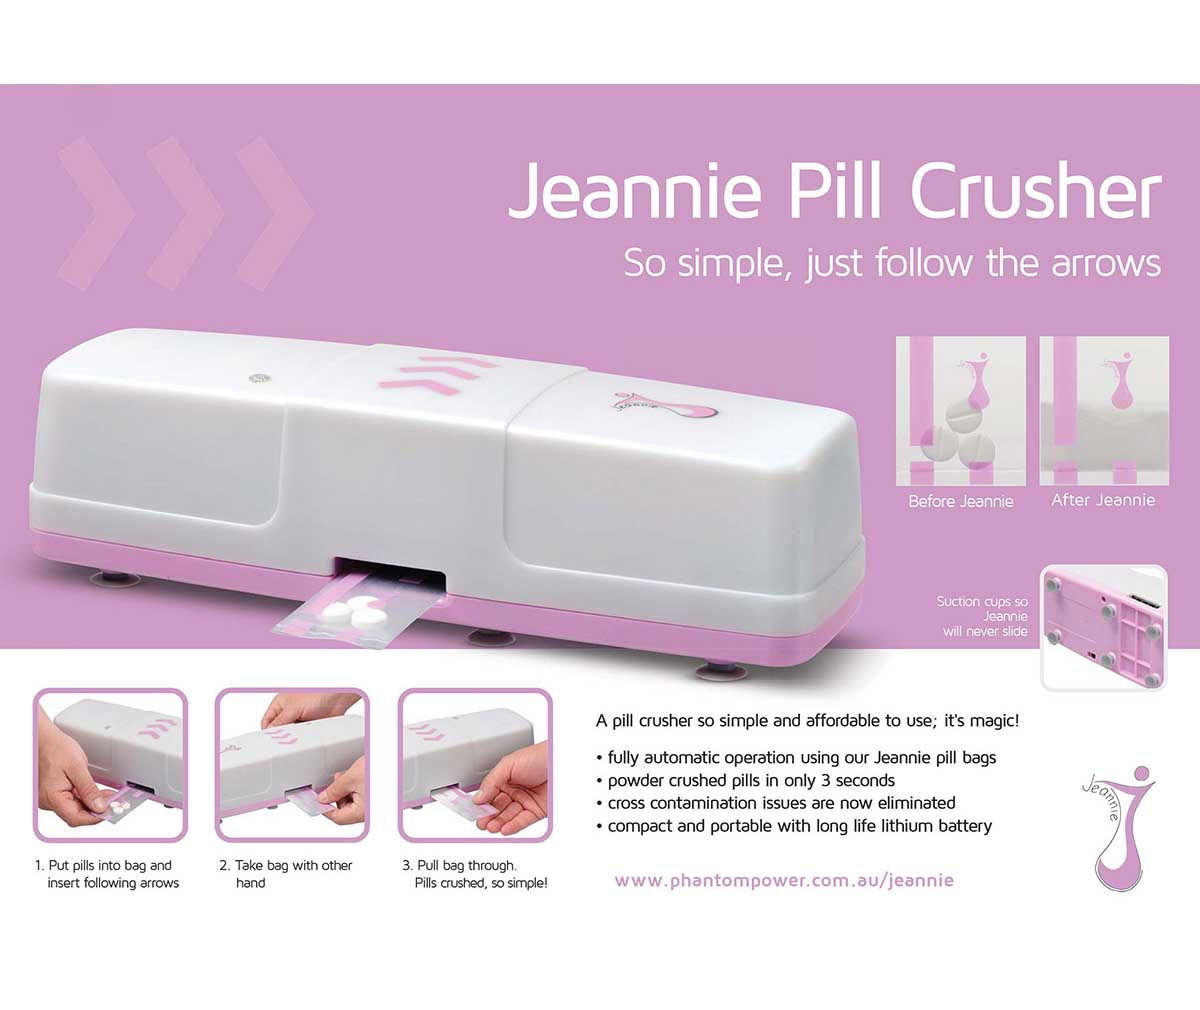 Jeannie Pill Crusher Gp Medical